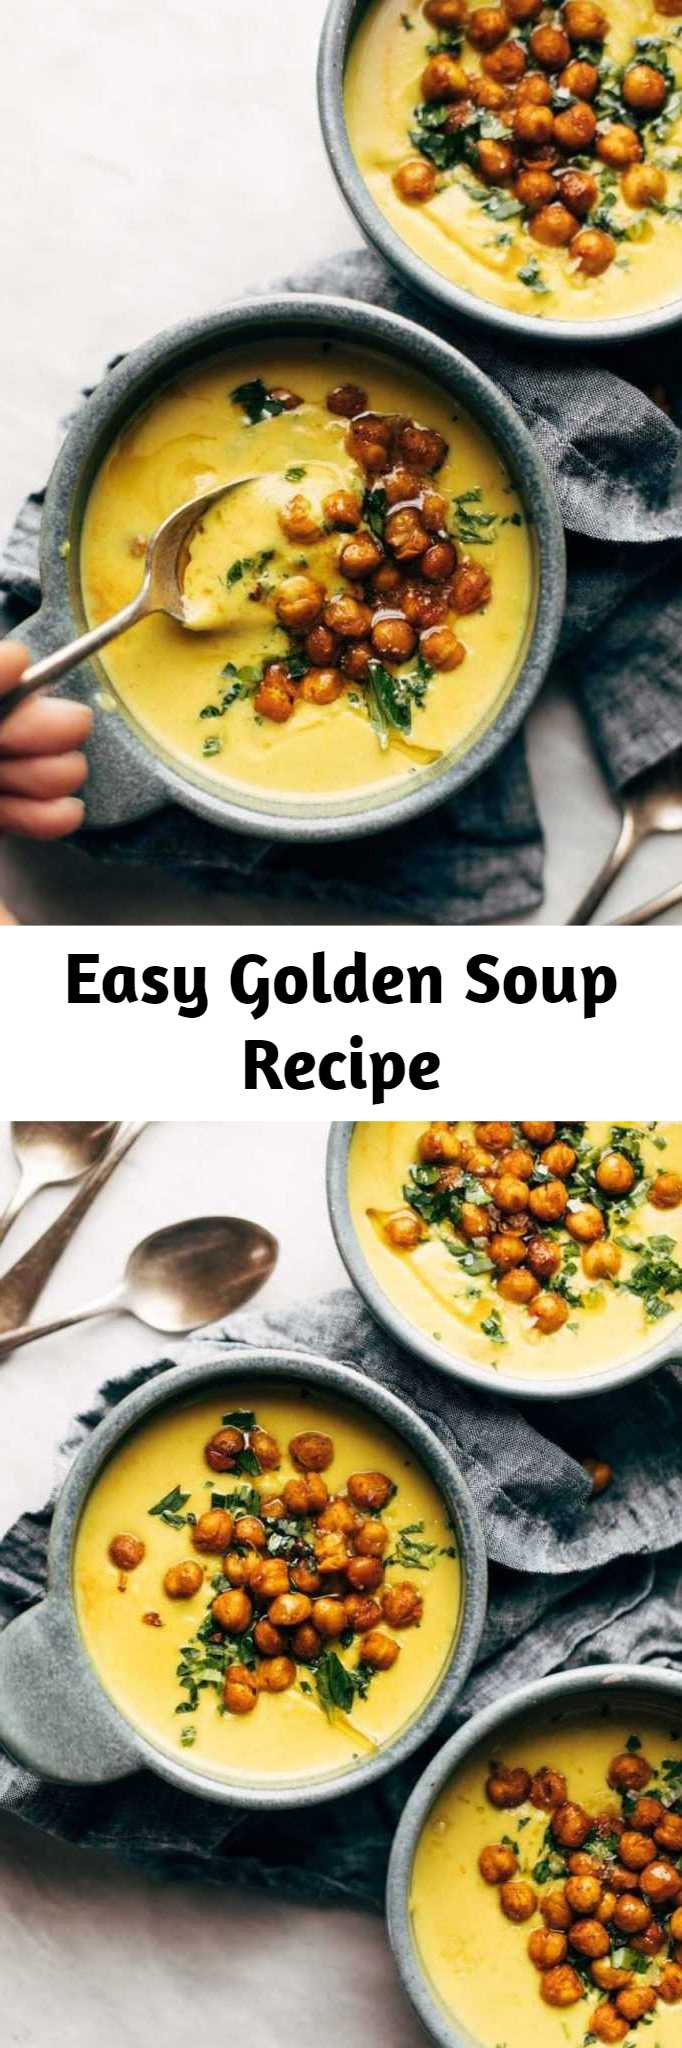 Easy Golden Soup Recipe - Cozy, bright, and healing with power-foods like turmeric, cauliflower, and cashews. Topped with crispy chickpeas. Super creamy and SO GOOD. #healthy #sugarfree #glutenfree #vegan #cleaneating #easyrecipe #soup